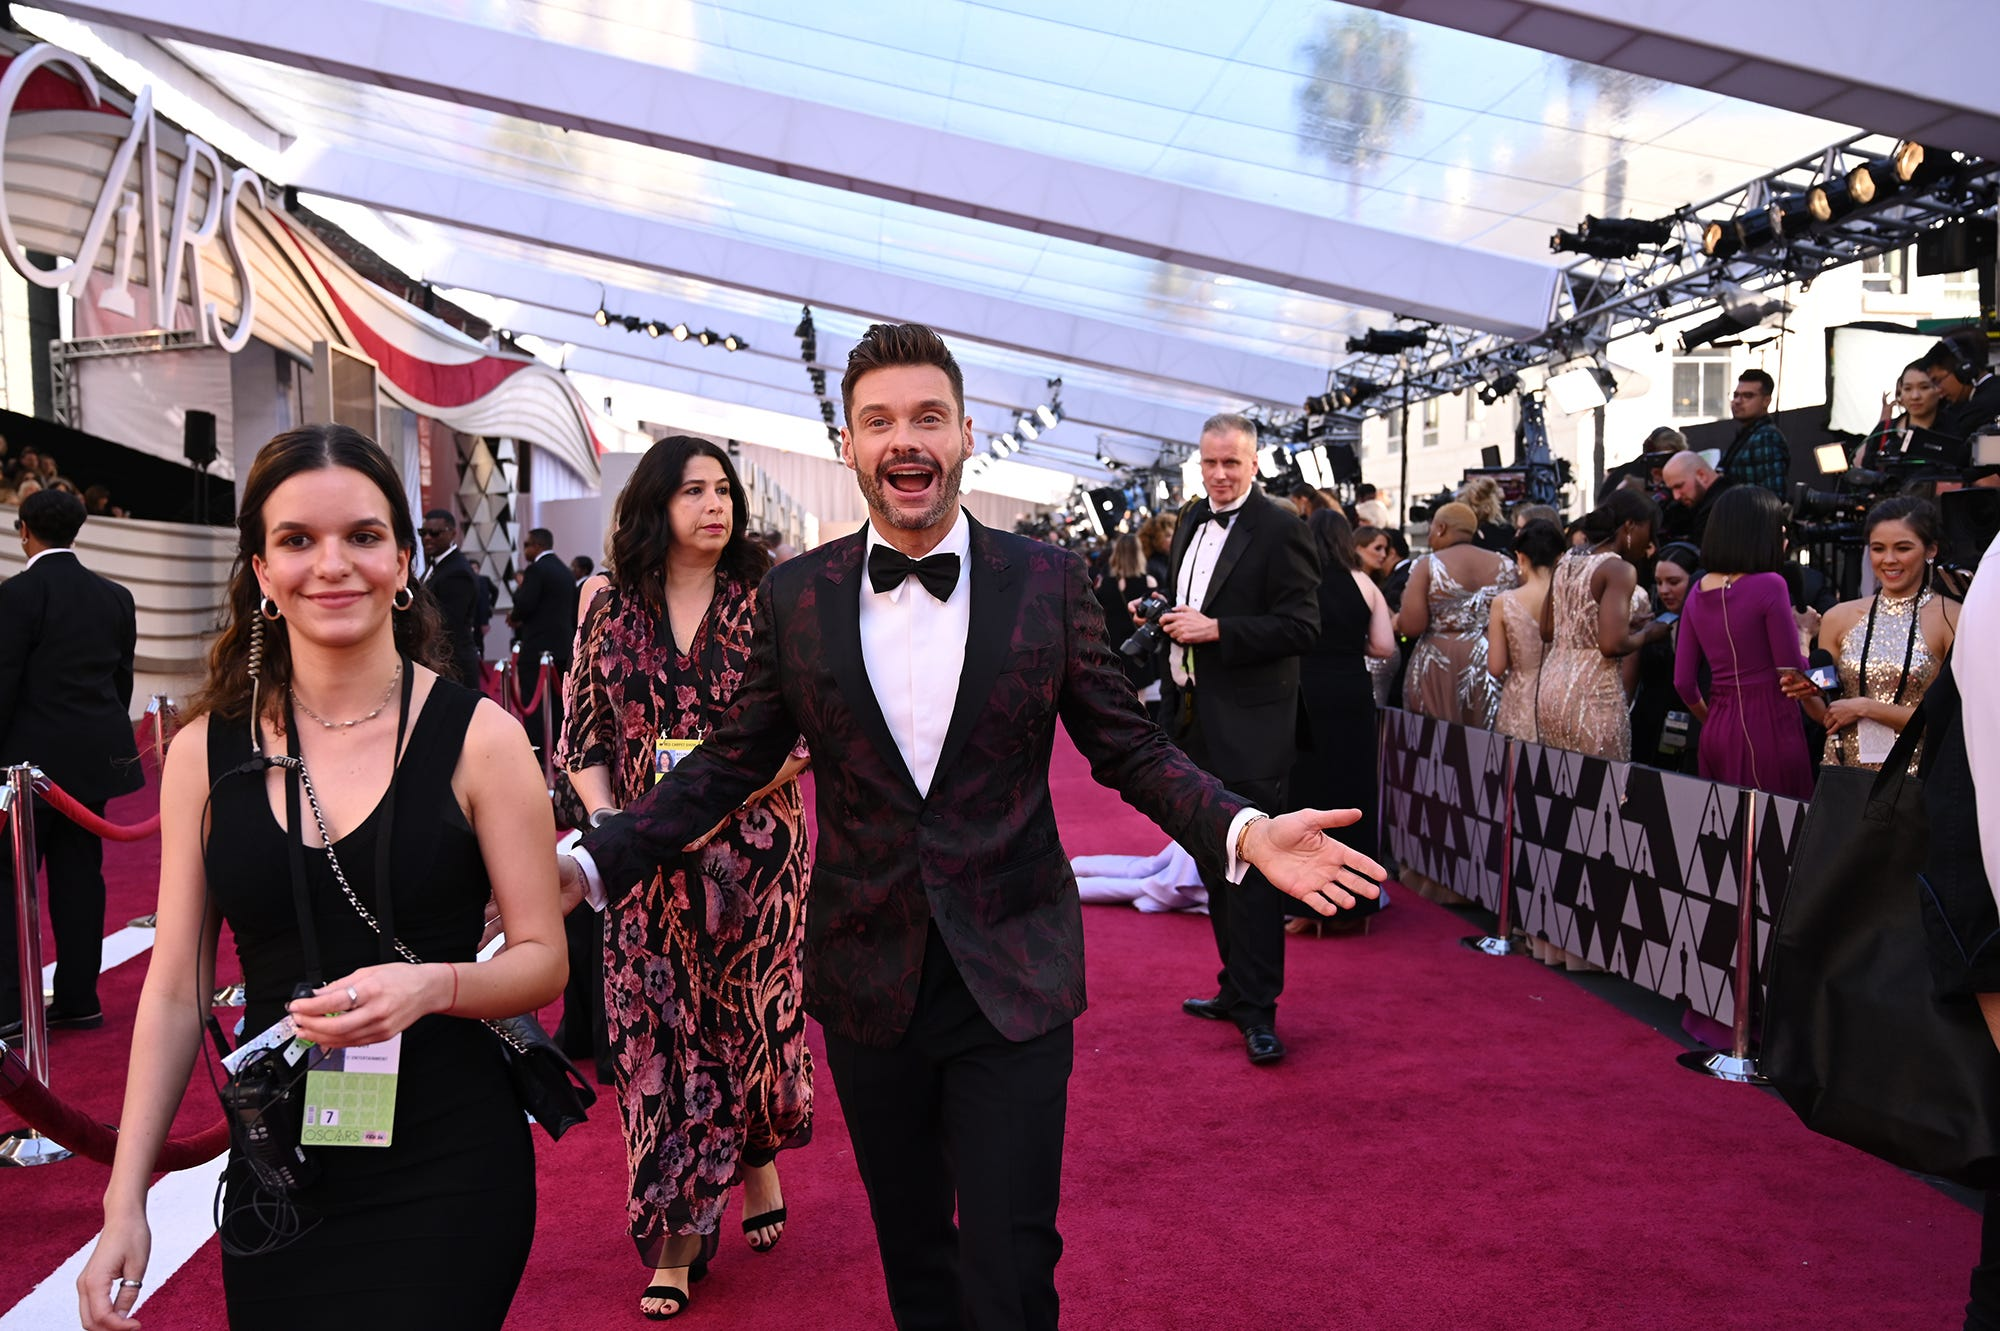 February 24, 2019; Los Angeles, CA, USA; Ryan Seacrest arrives at the 91st Academy Awards at the Dolby Theatre. Mandatory Credit: Robert Hanashiro-USA TODAY NETWORK (Via OlyDrop)